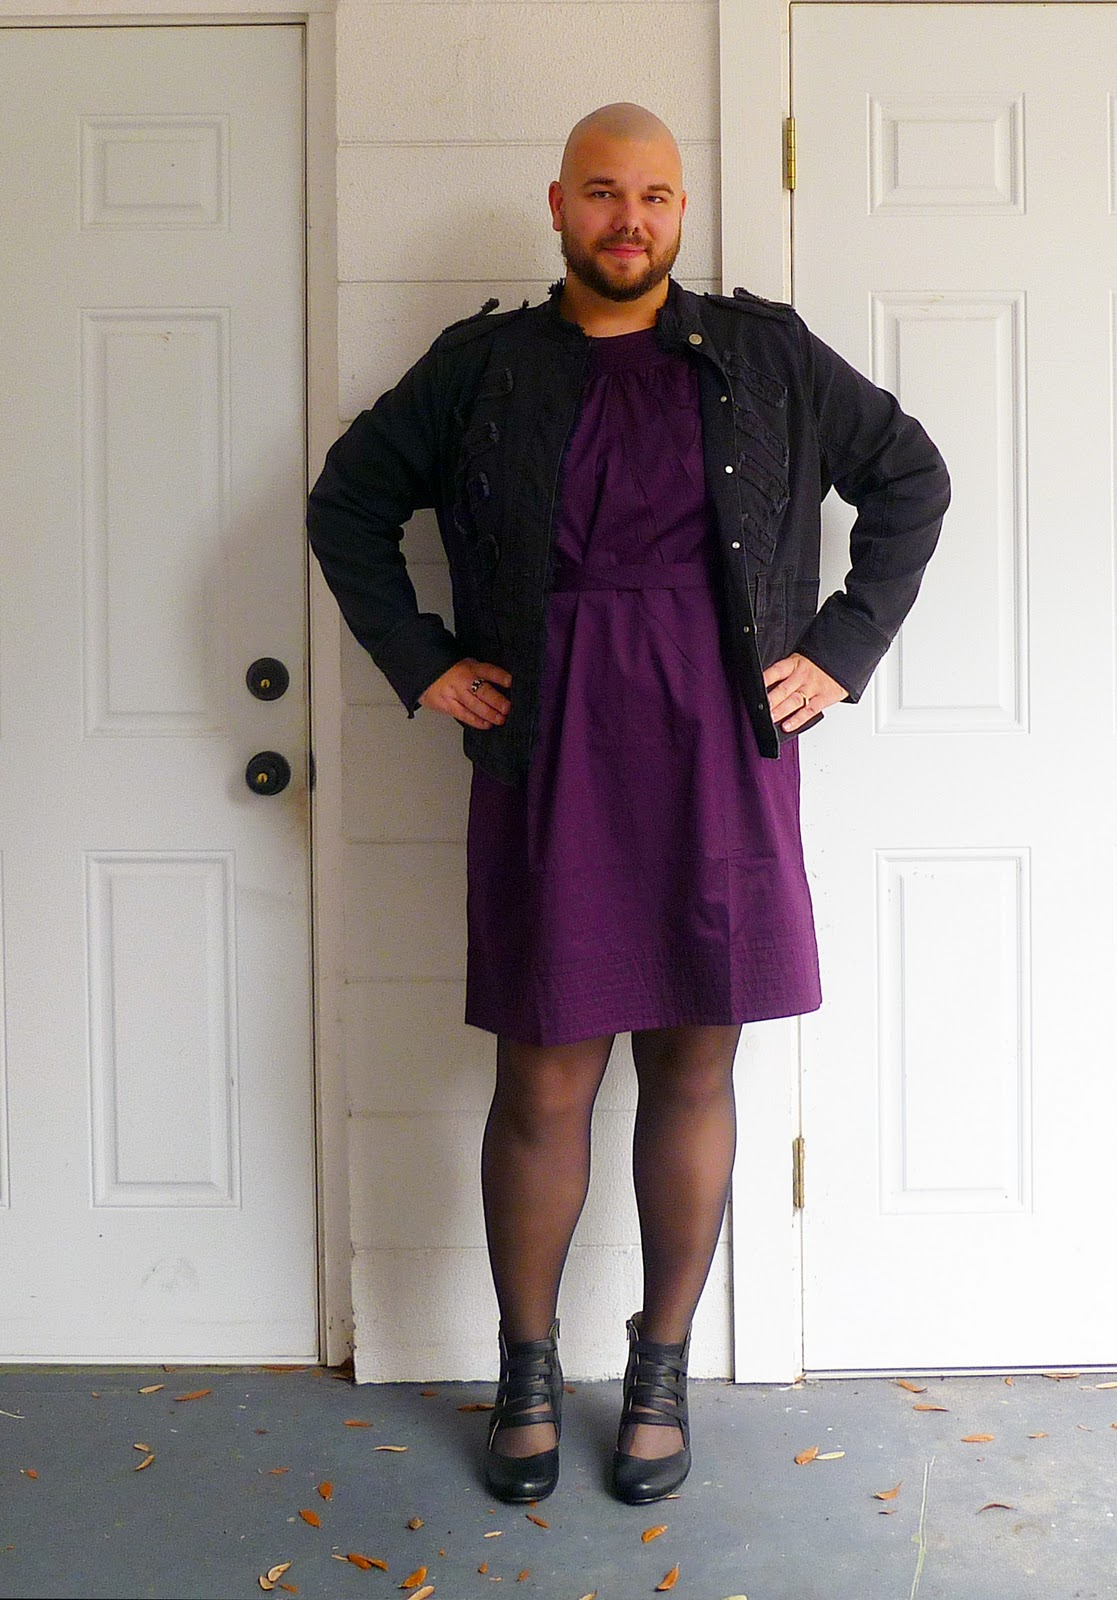 Purple+Dress+with+Military+Jacket.JPG